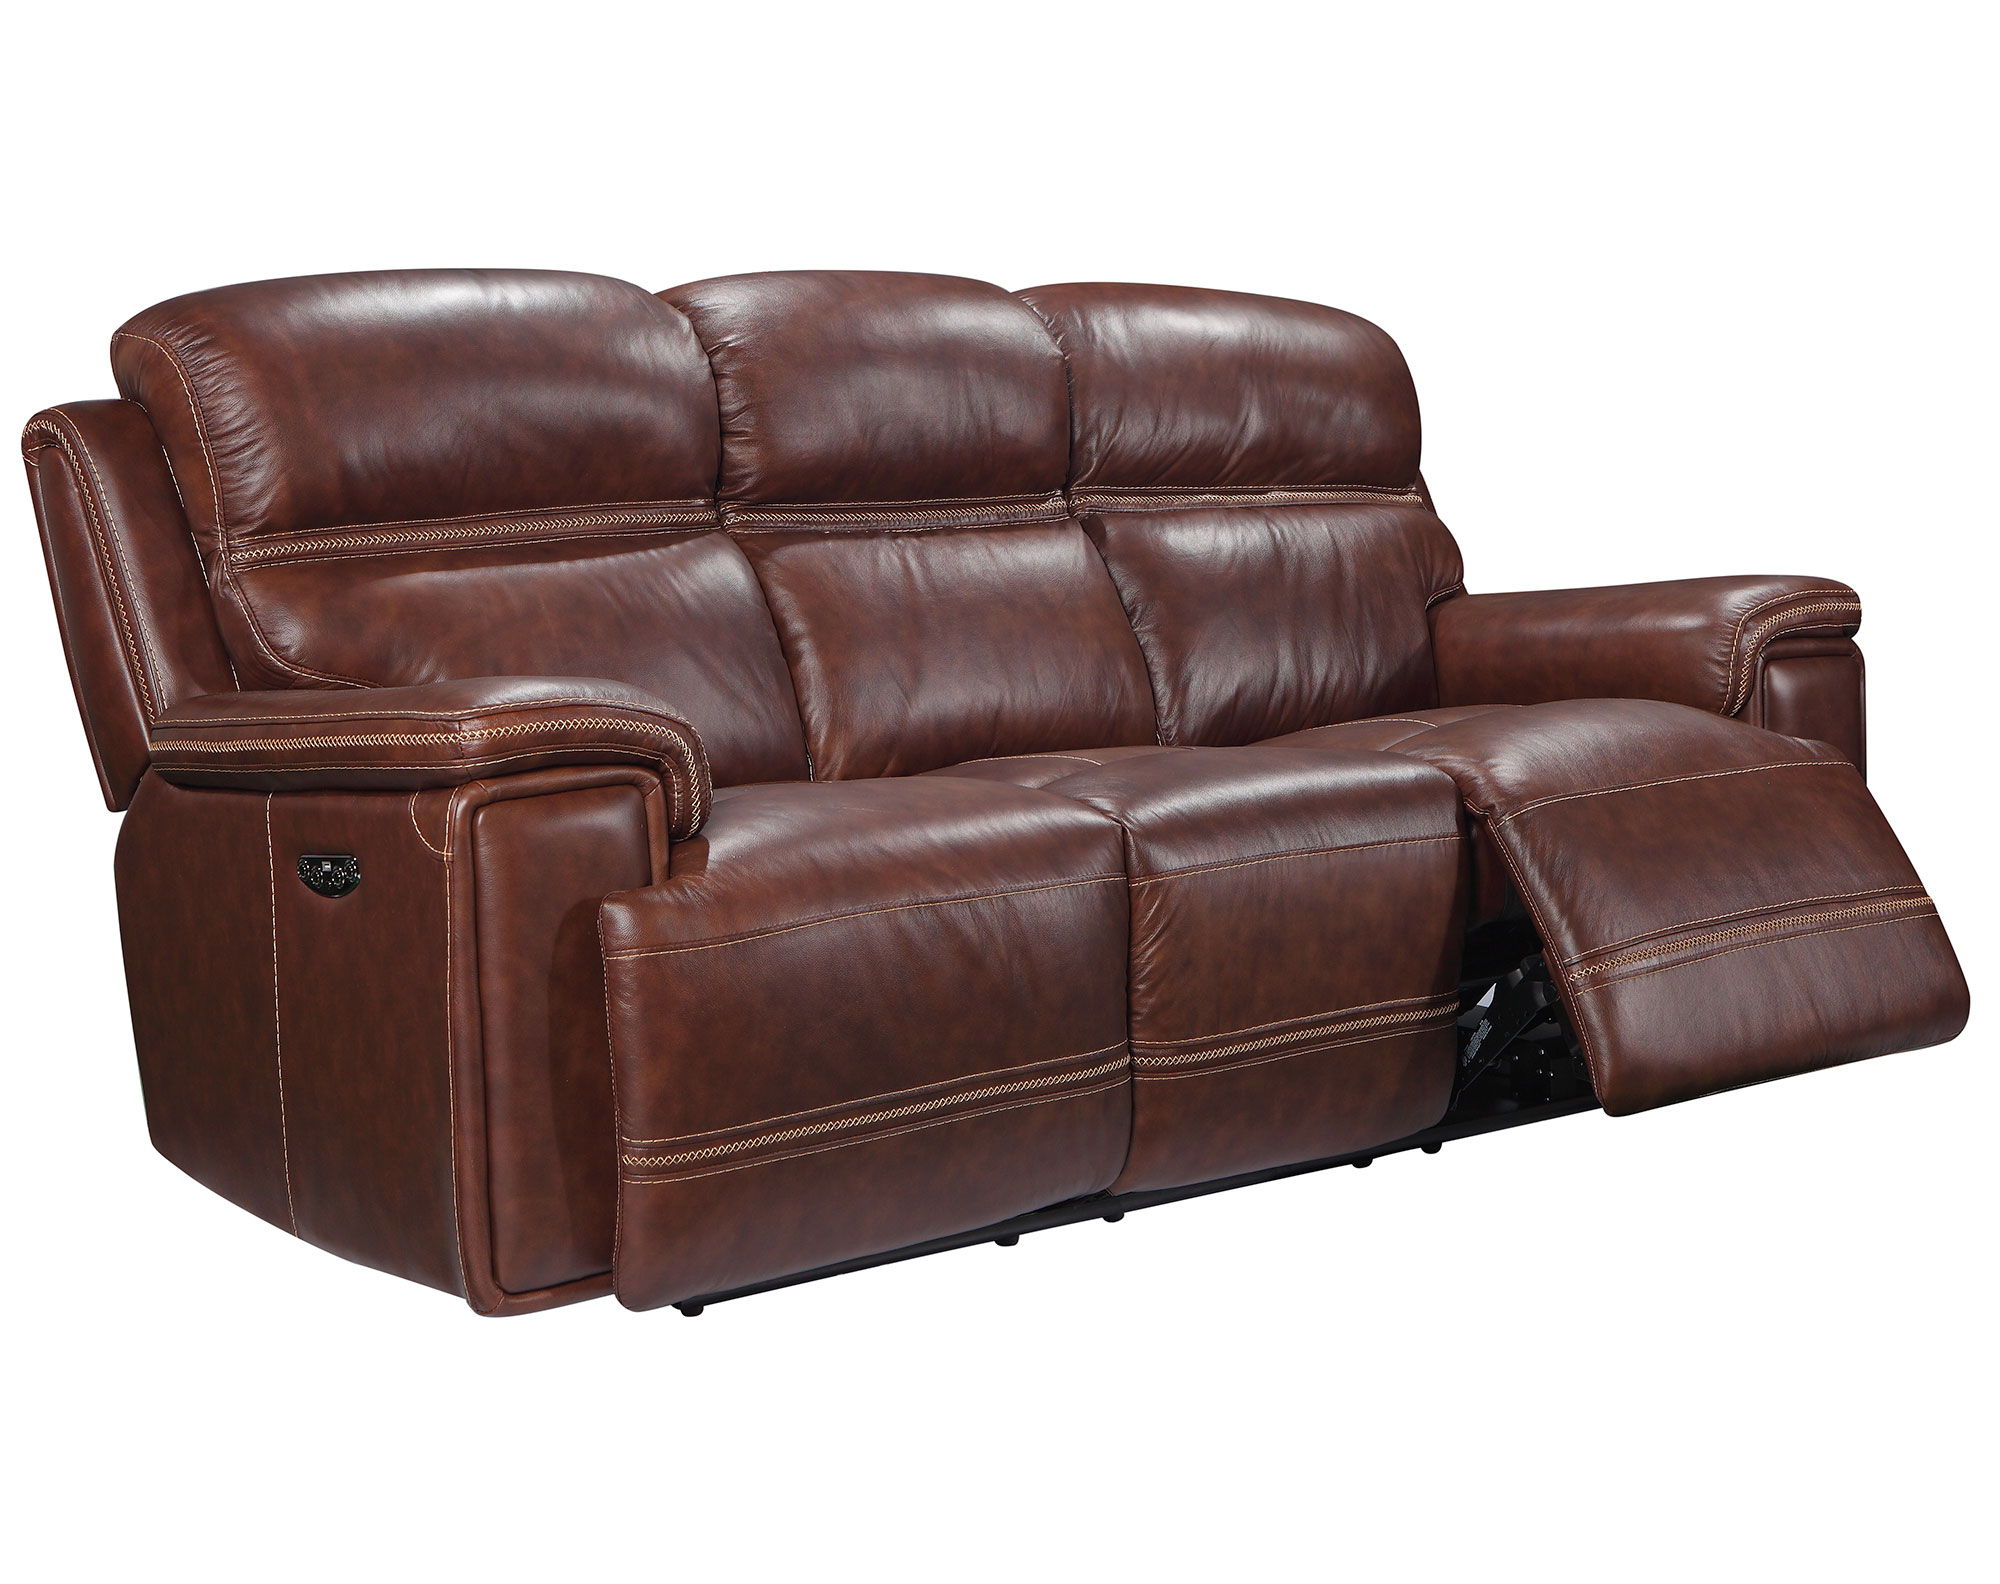 Terrific Fresno 91 Leather Reclining Sofa W Power Sofas And Pabps2019 Chair Design Images Pabps2019Com